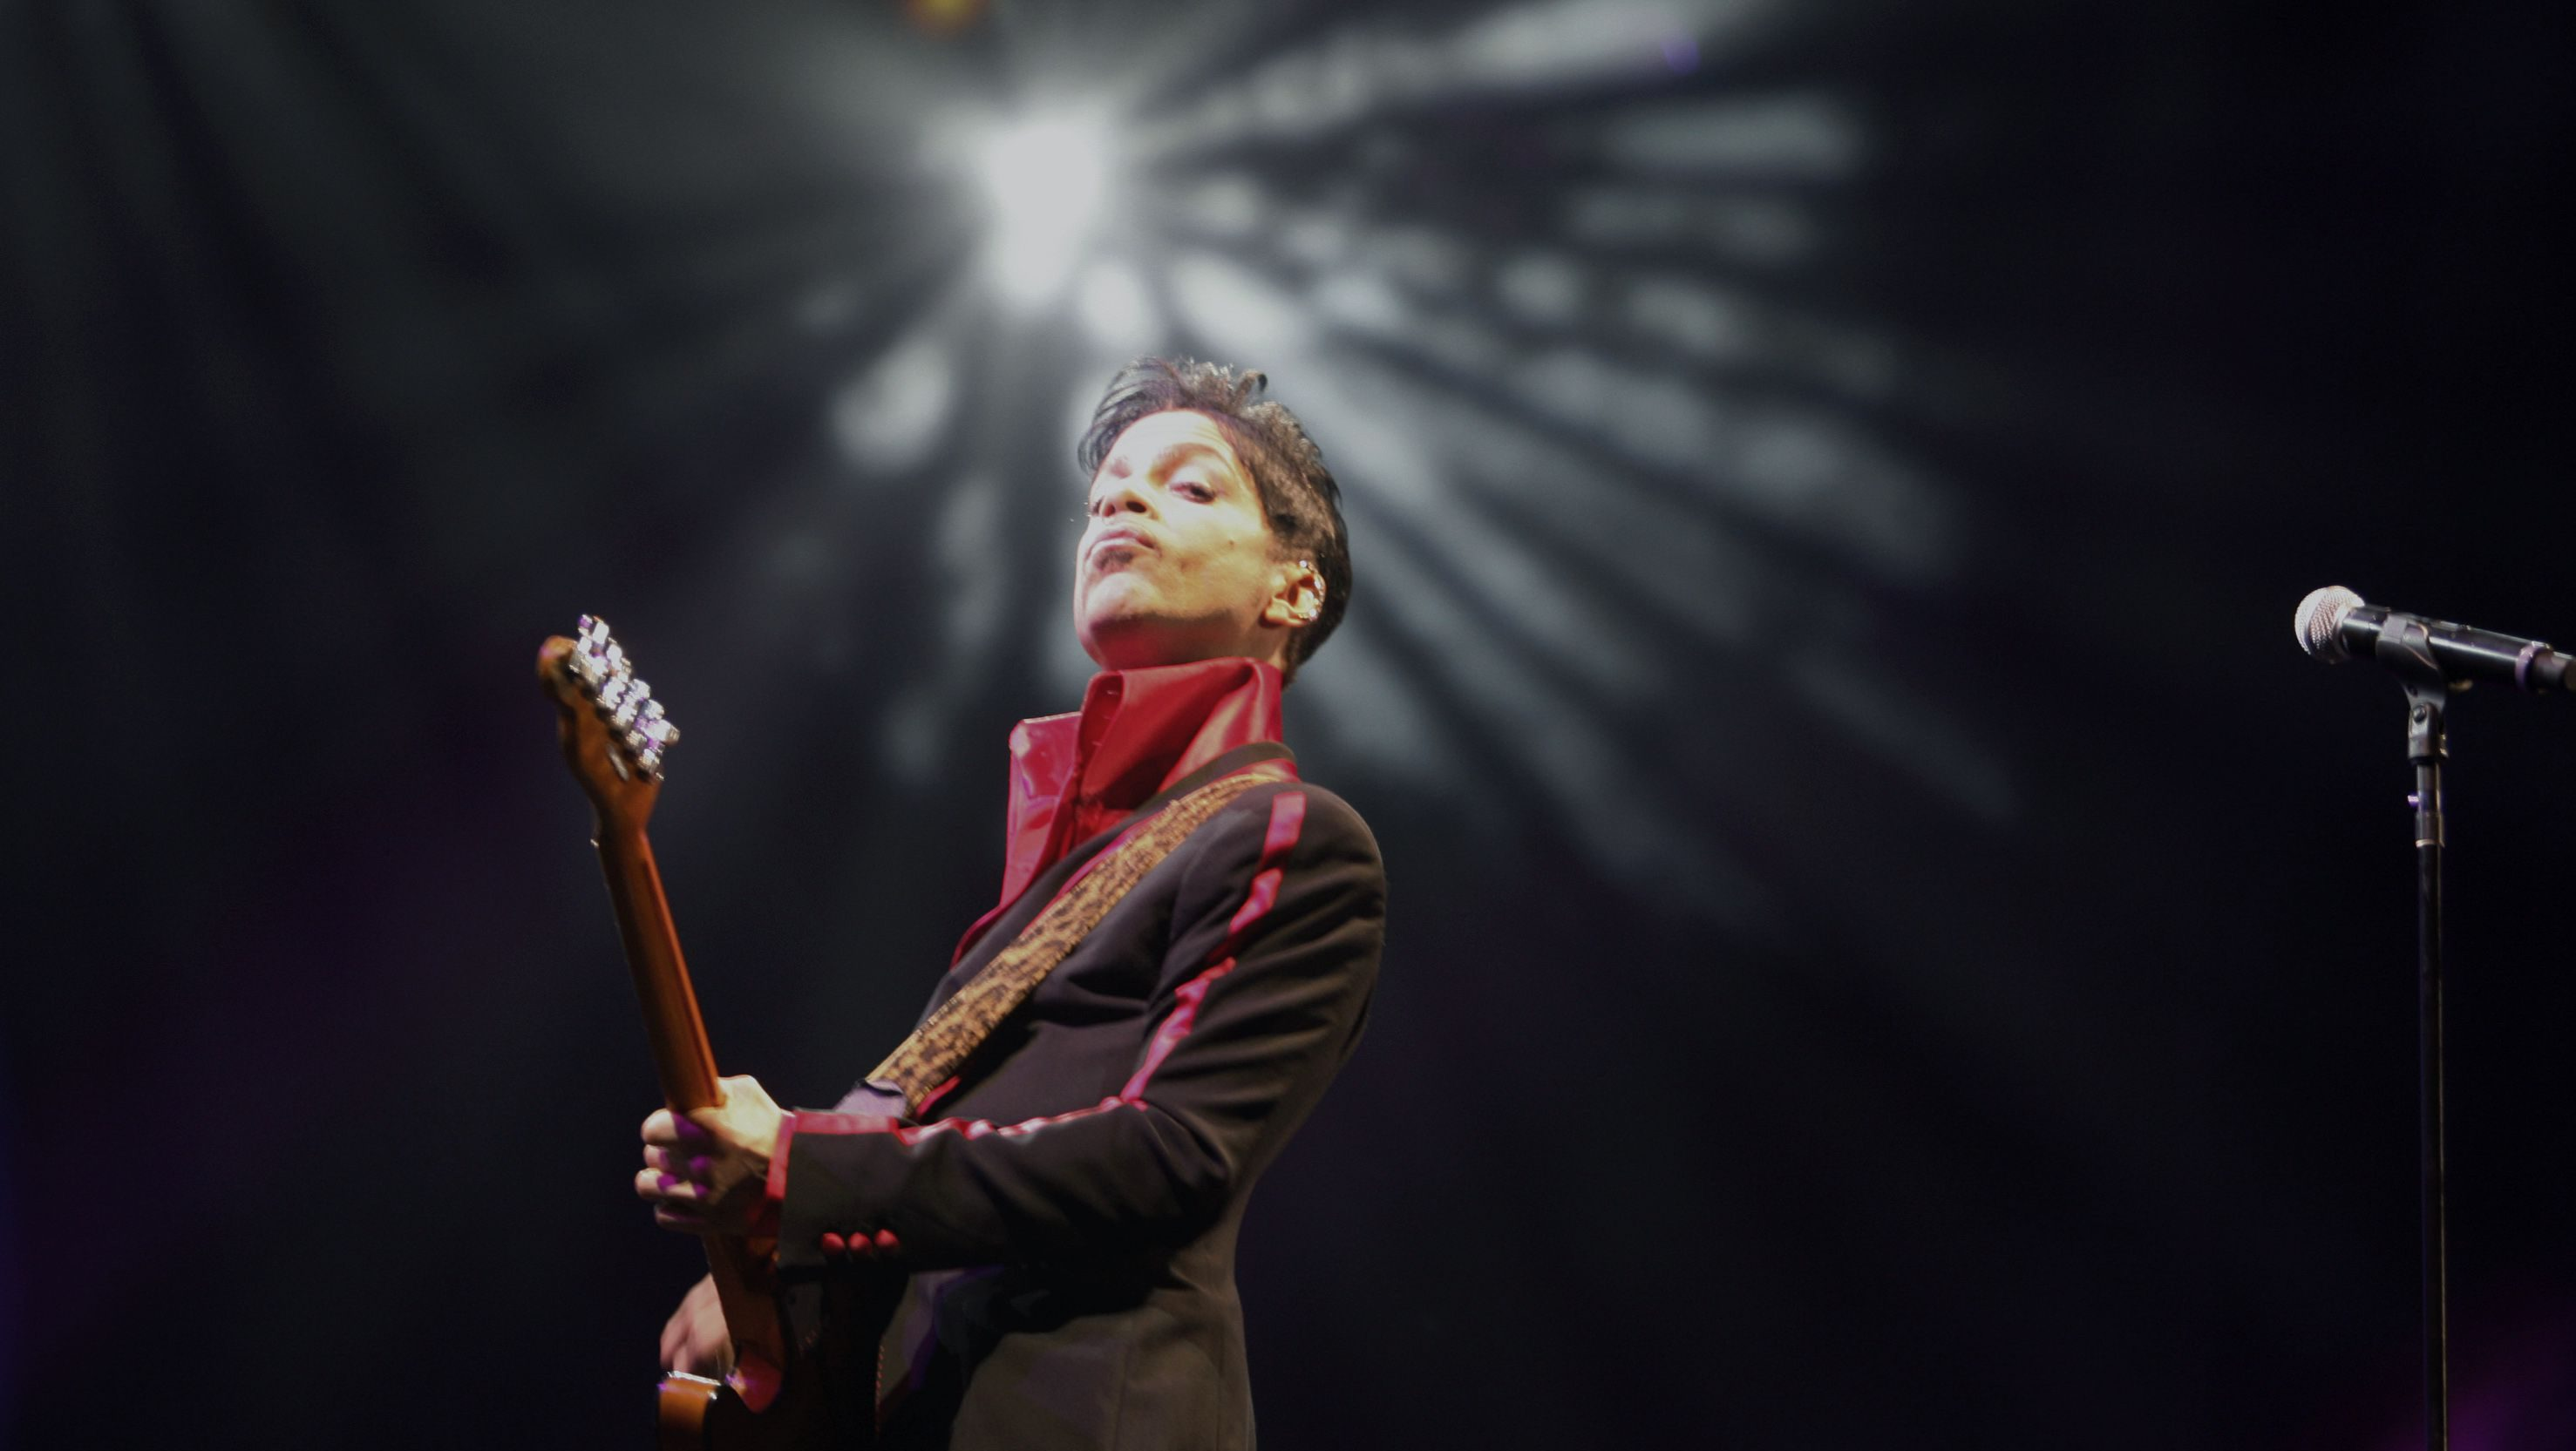 U.S. musician Prince performs on stage at Yas Arena in Yas Island